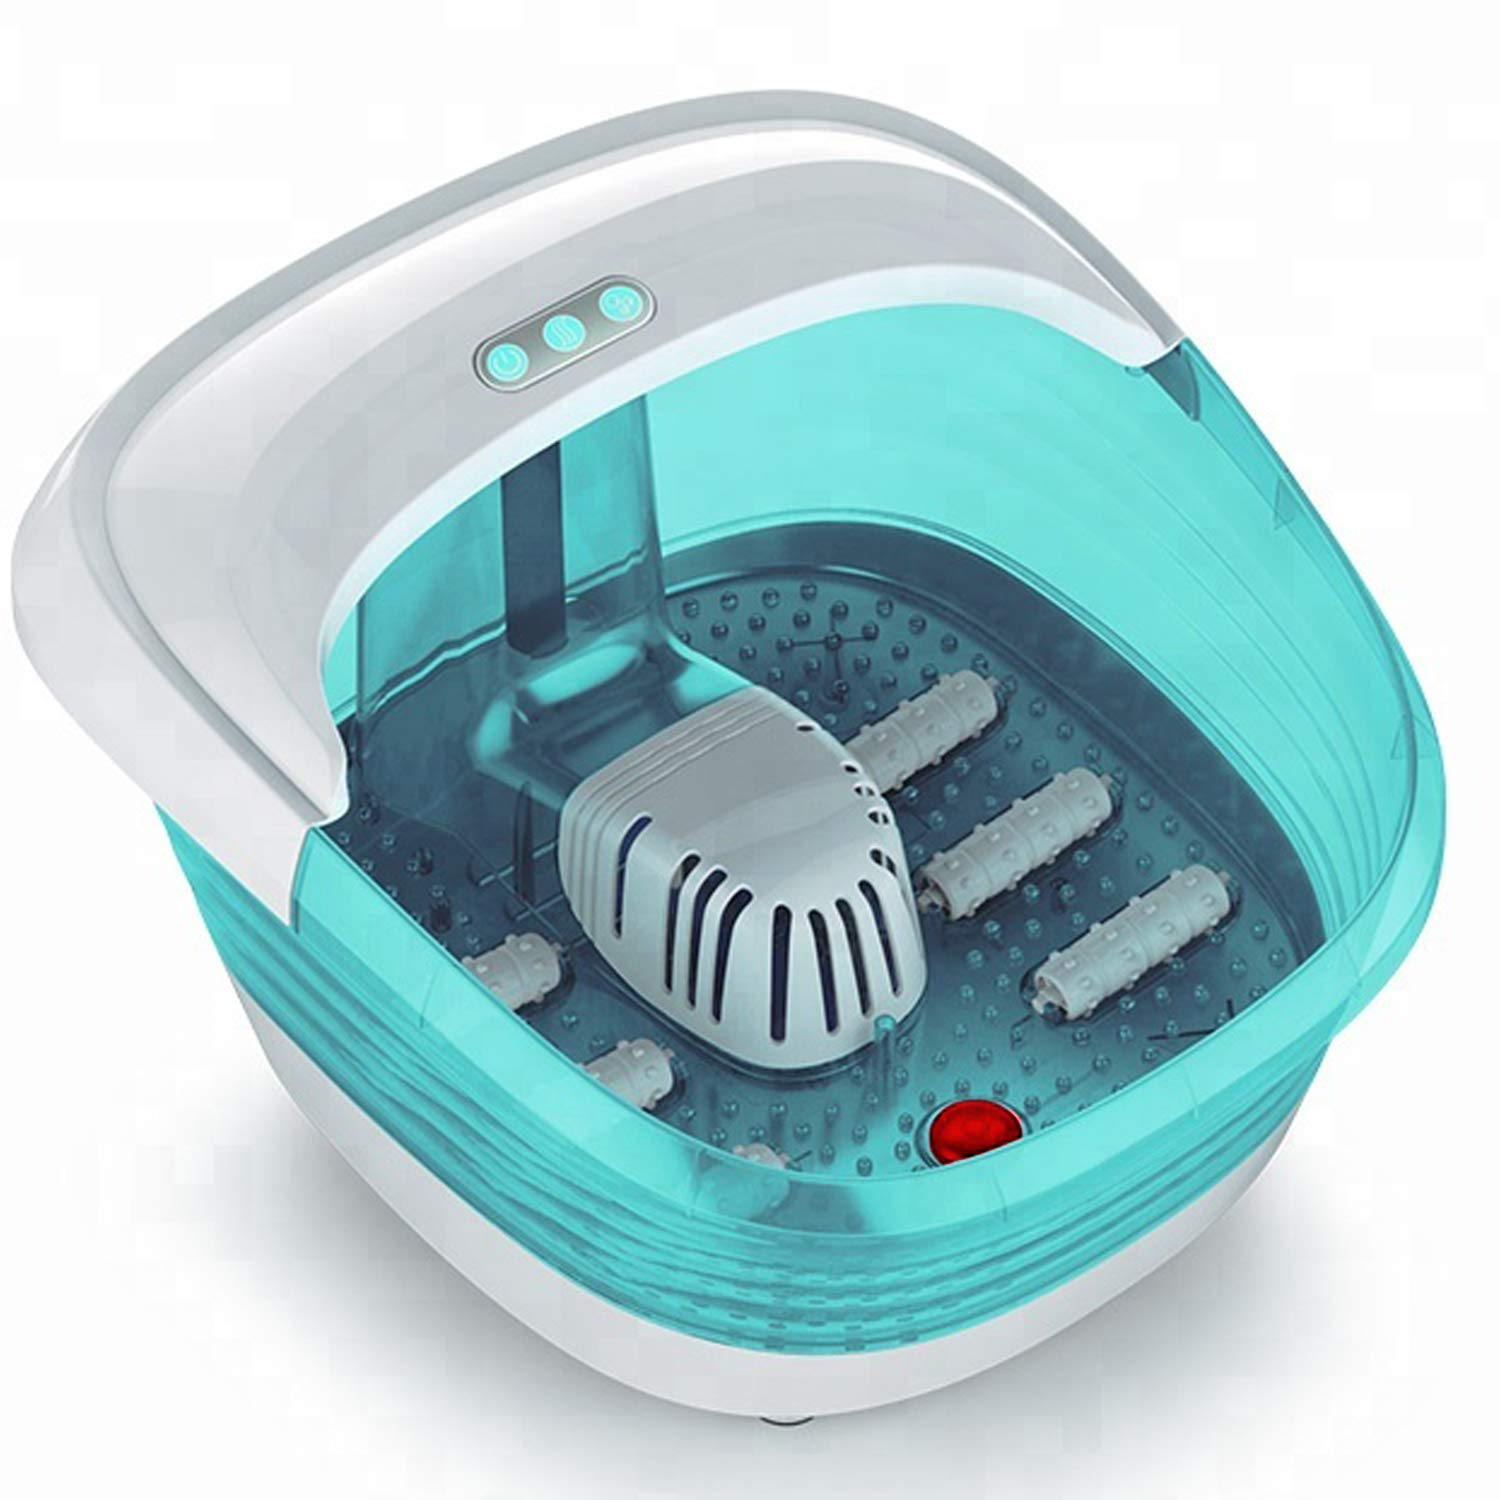 SmartHome Foot Spa - Portable Heat Therapy Massager Tub - Quick & Easy Pain & Tension Relief - Soothe & Relaxes Tired Muscles for Salon & Home Use